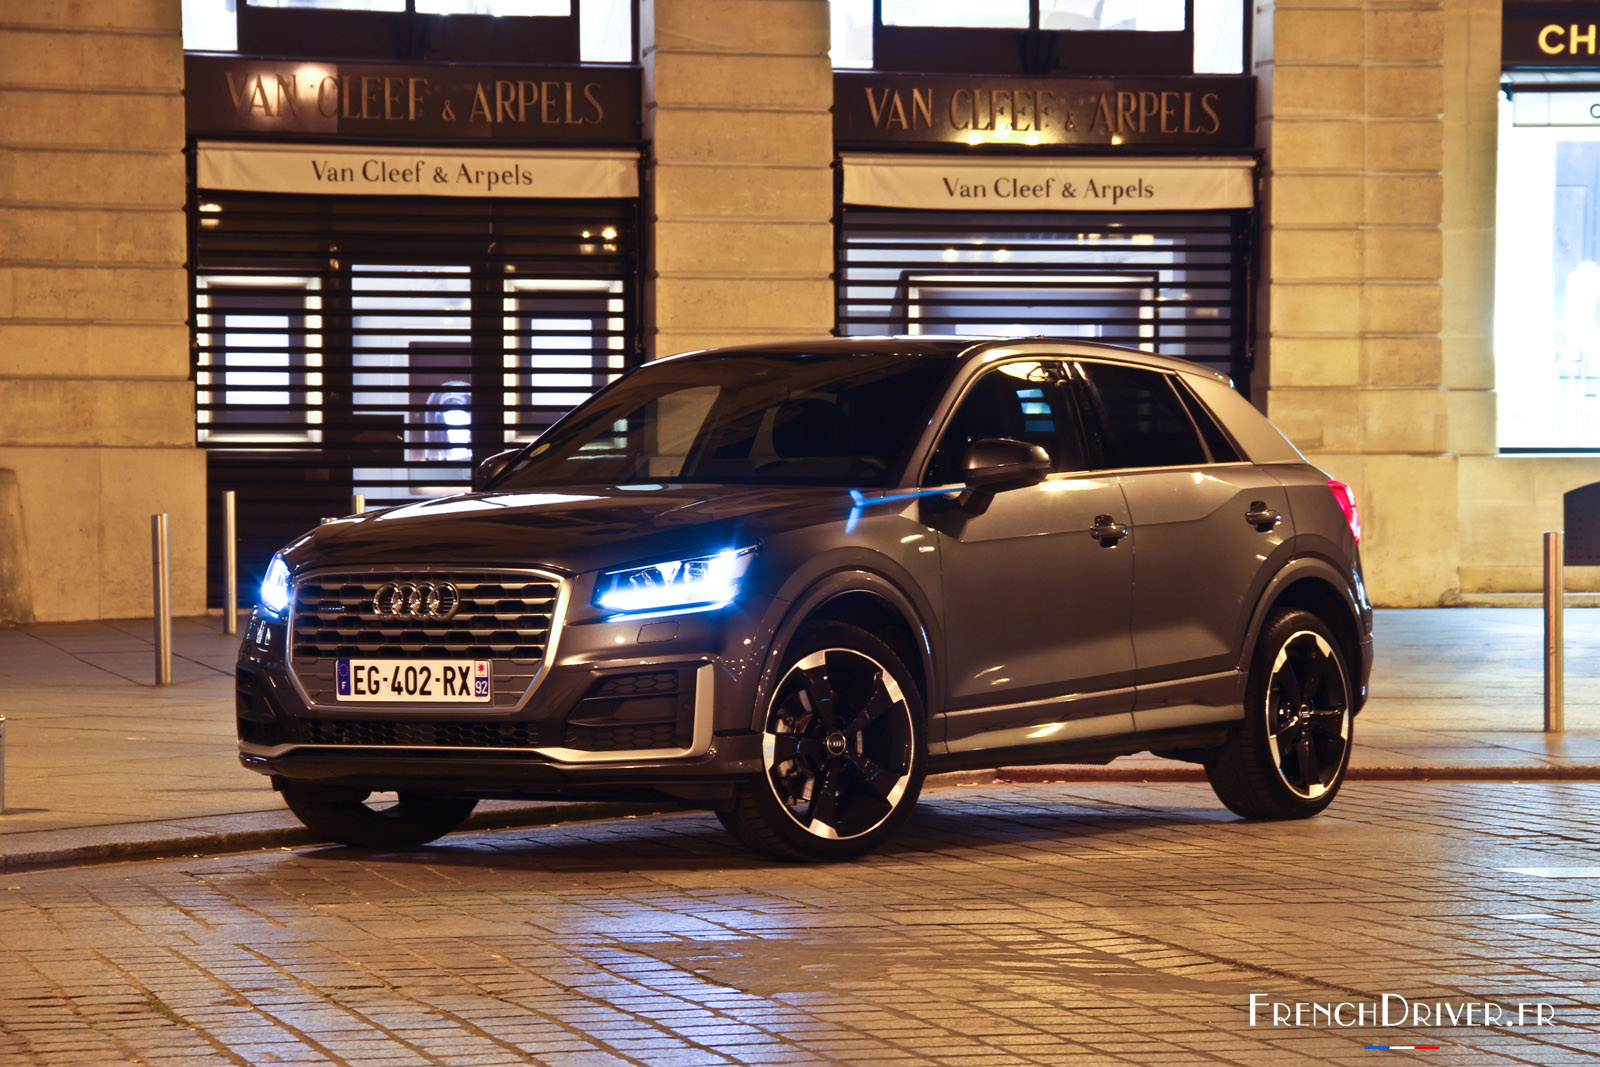 essai audi q2 tdi 190 s line citadine pour parisienne press e french driver. Black Bedroom Furniture Sets. Home Design Ideas